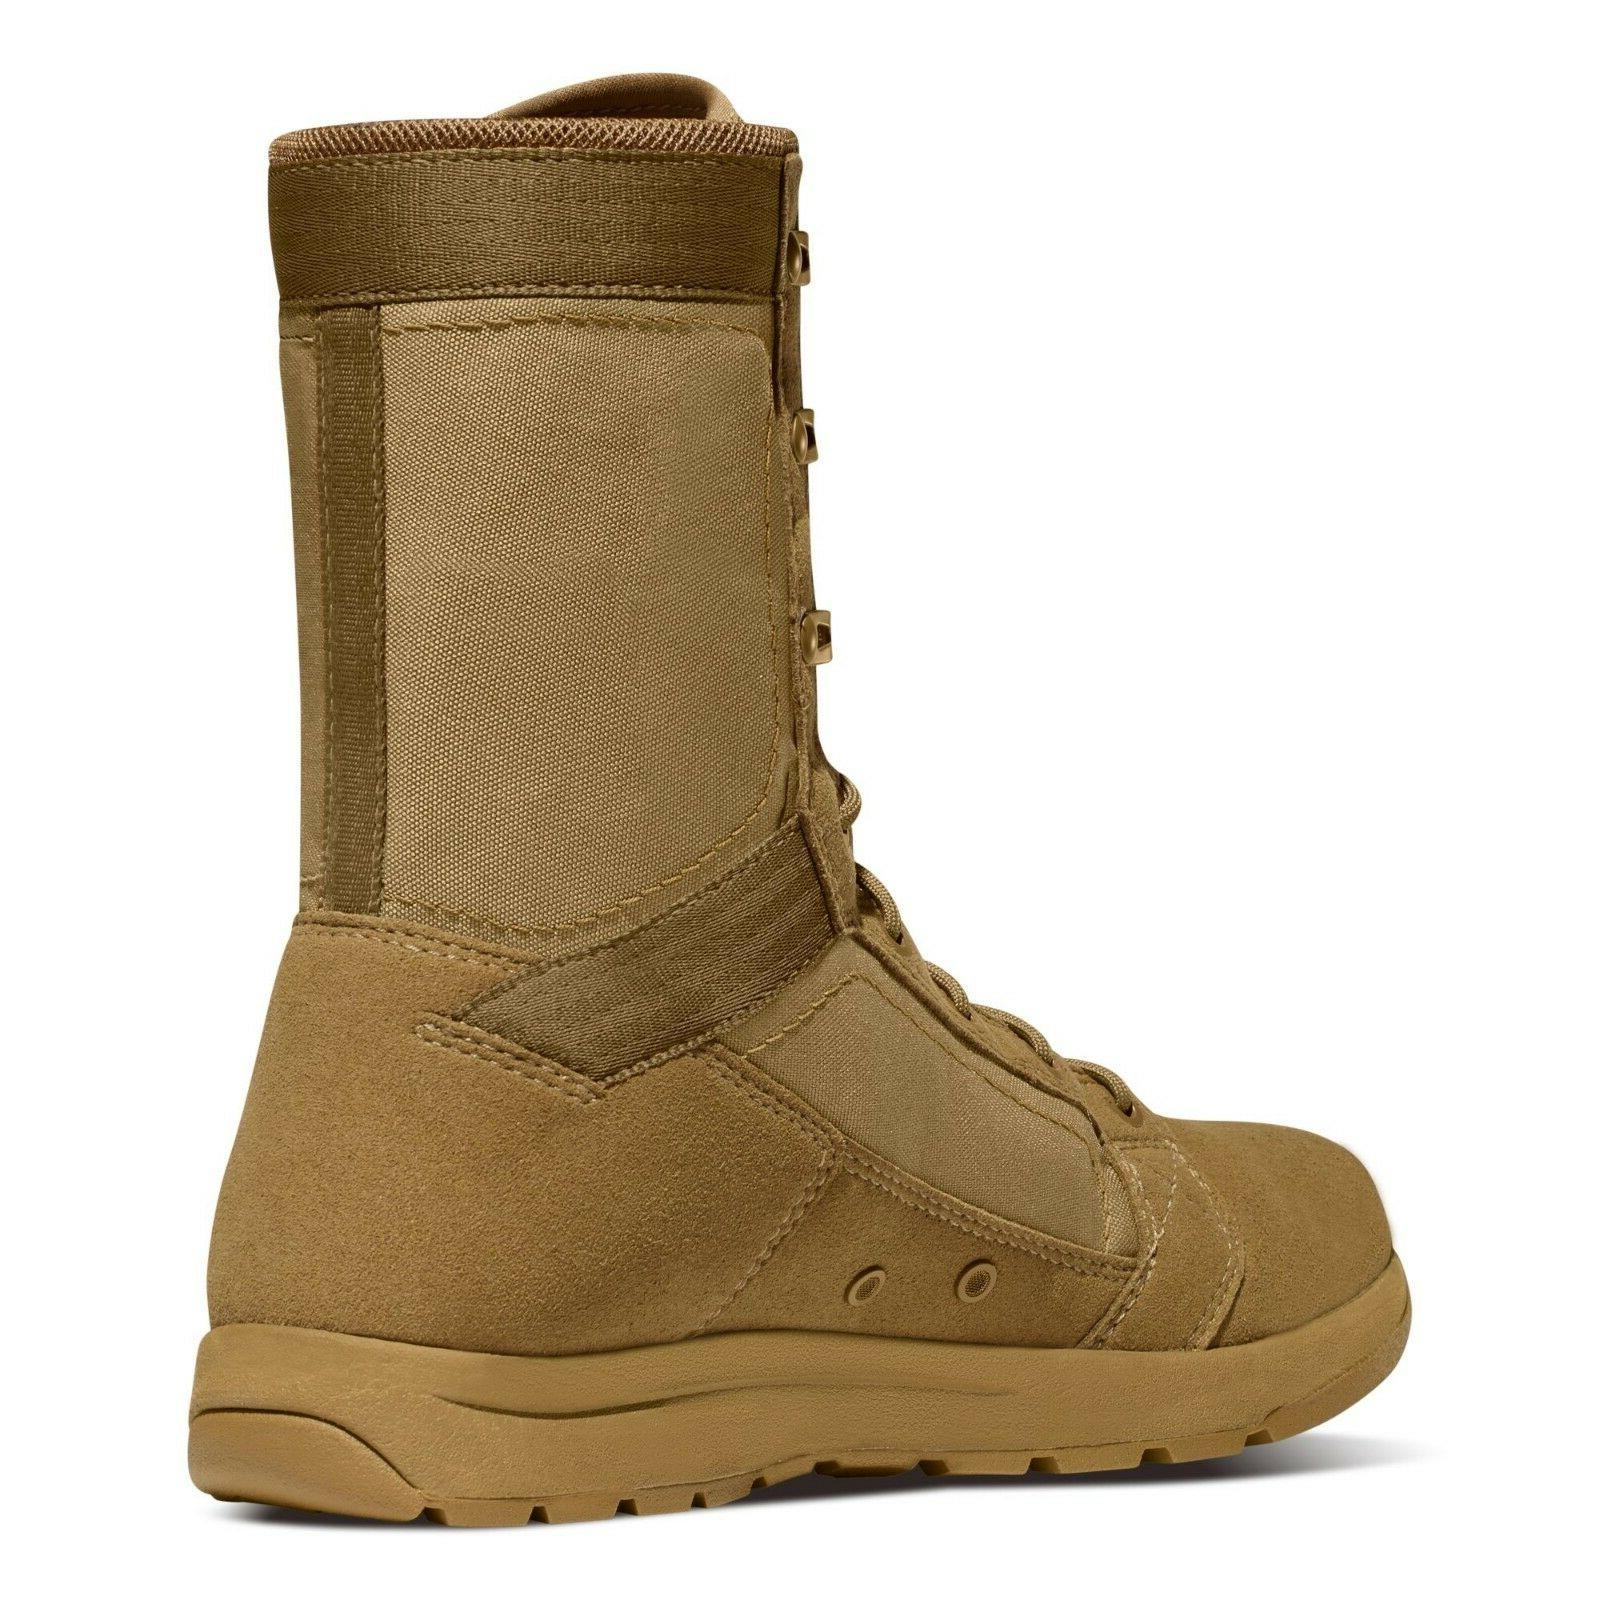 "Danner 50136 8"" Coyote AR Duty Military Tactical Boots"